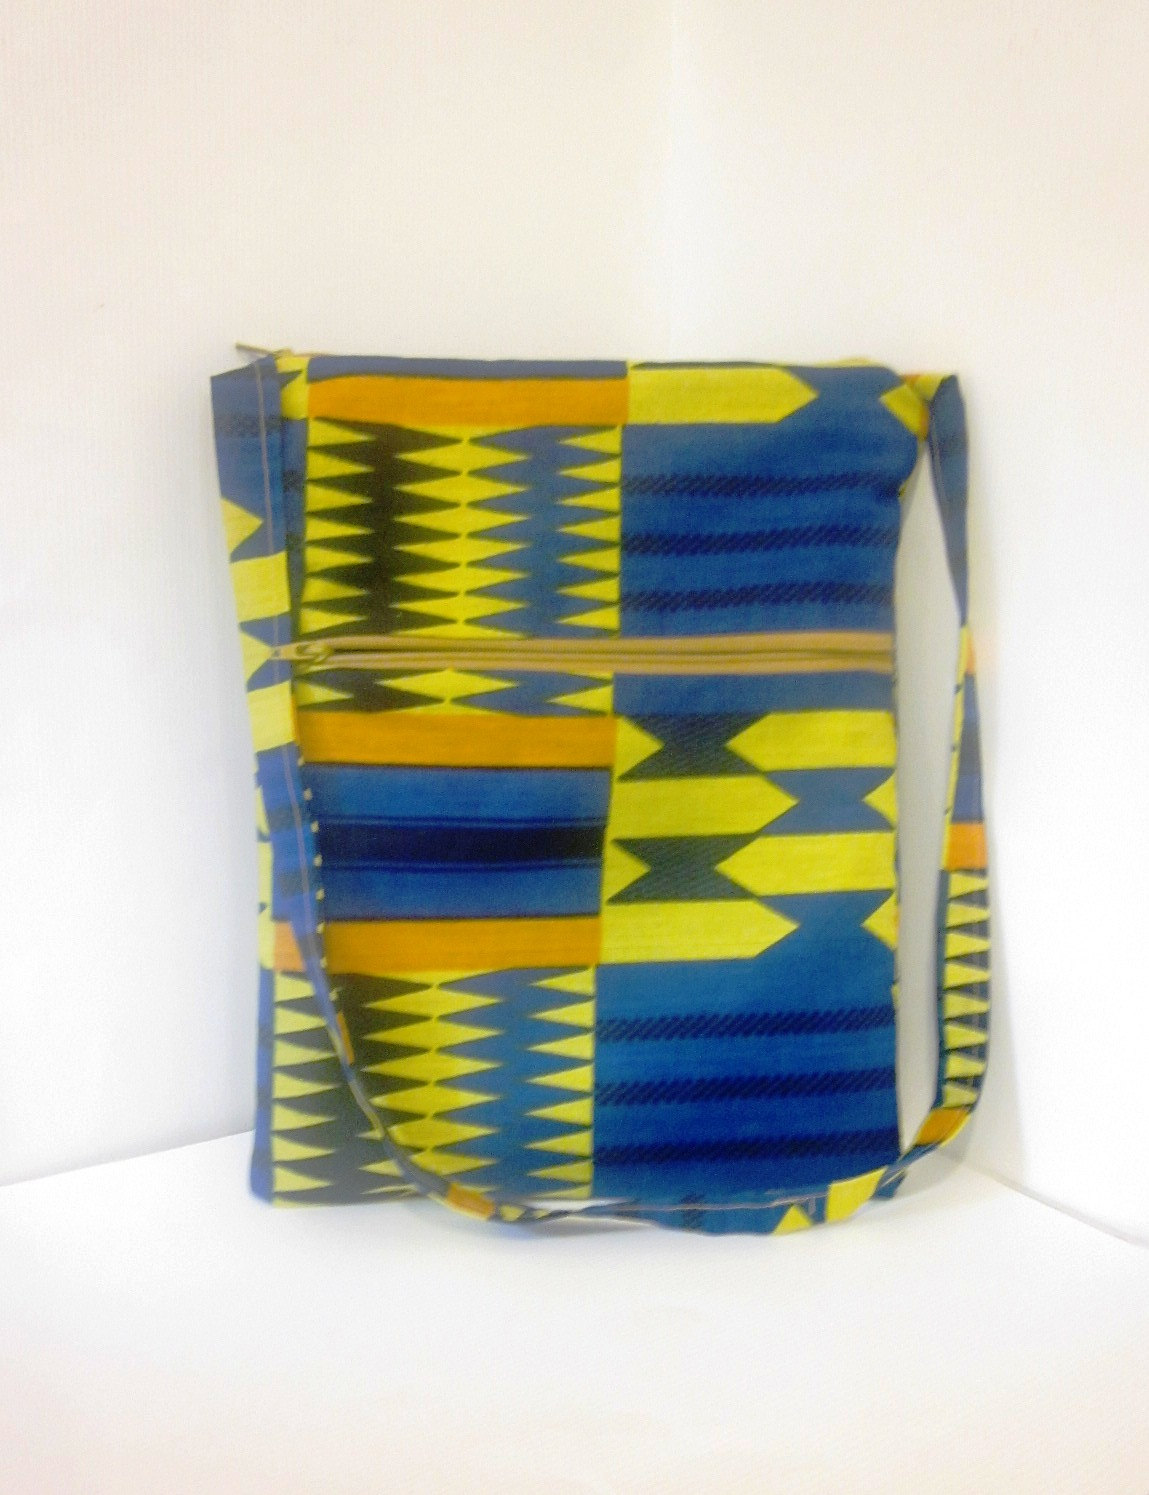 Multi Pocket Zipper Purse Tote Bag African Tribal Pattern in Blue and Gold - handjstarcreations